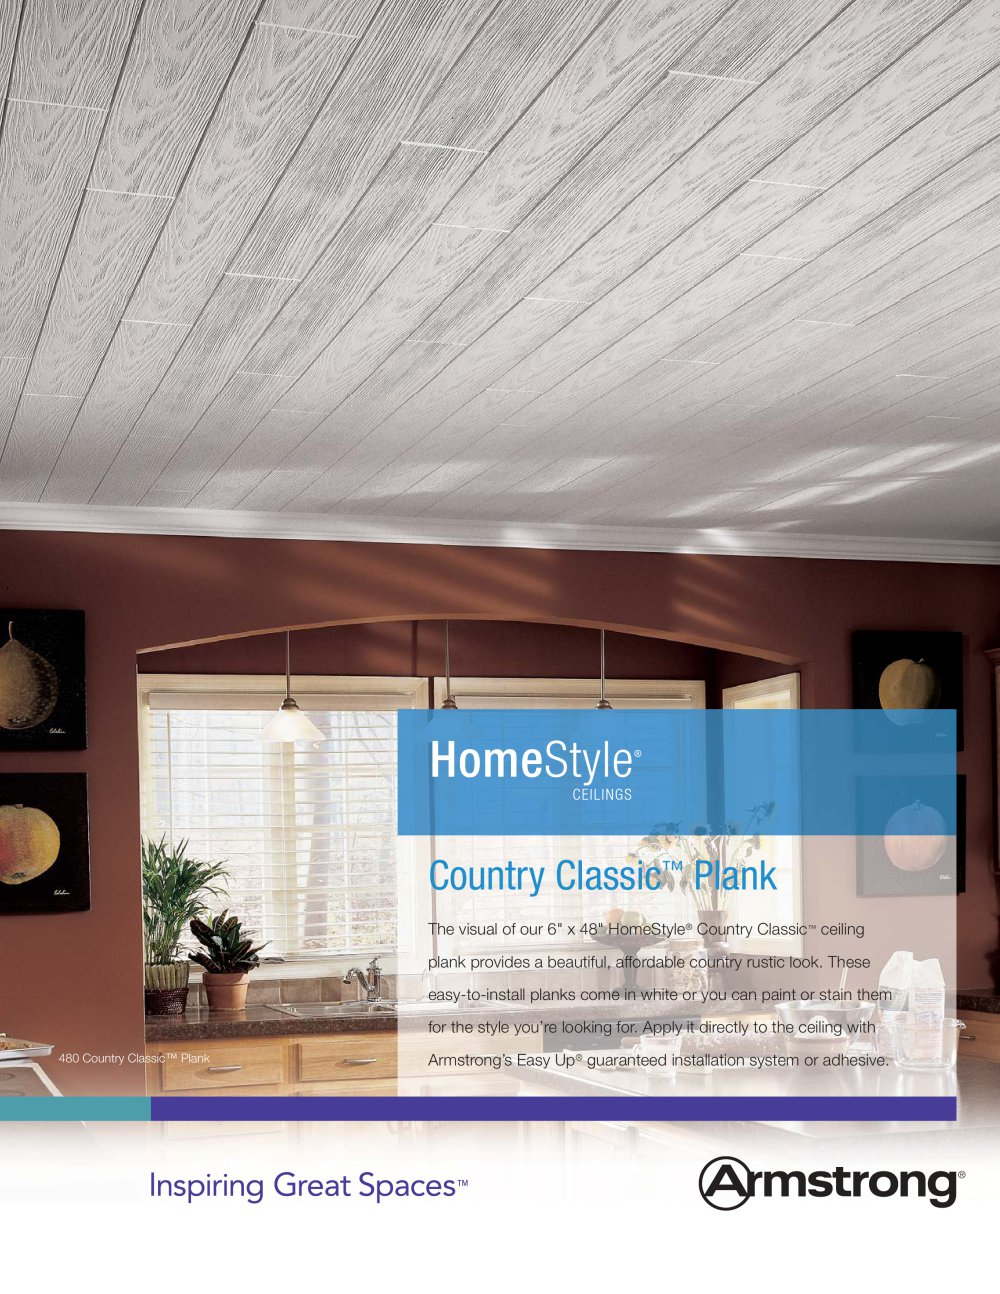 Homestyle Country Clic Ceiling Planks 1 2 Pages